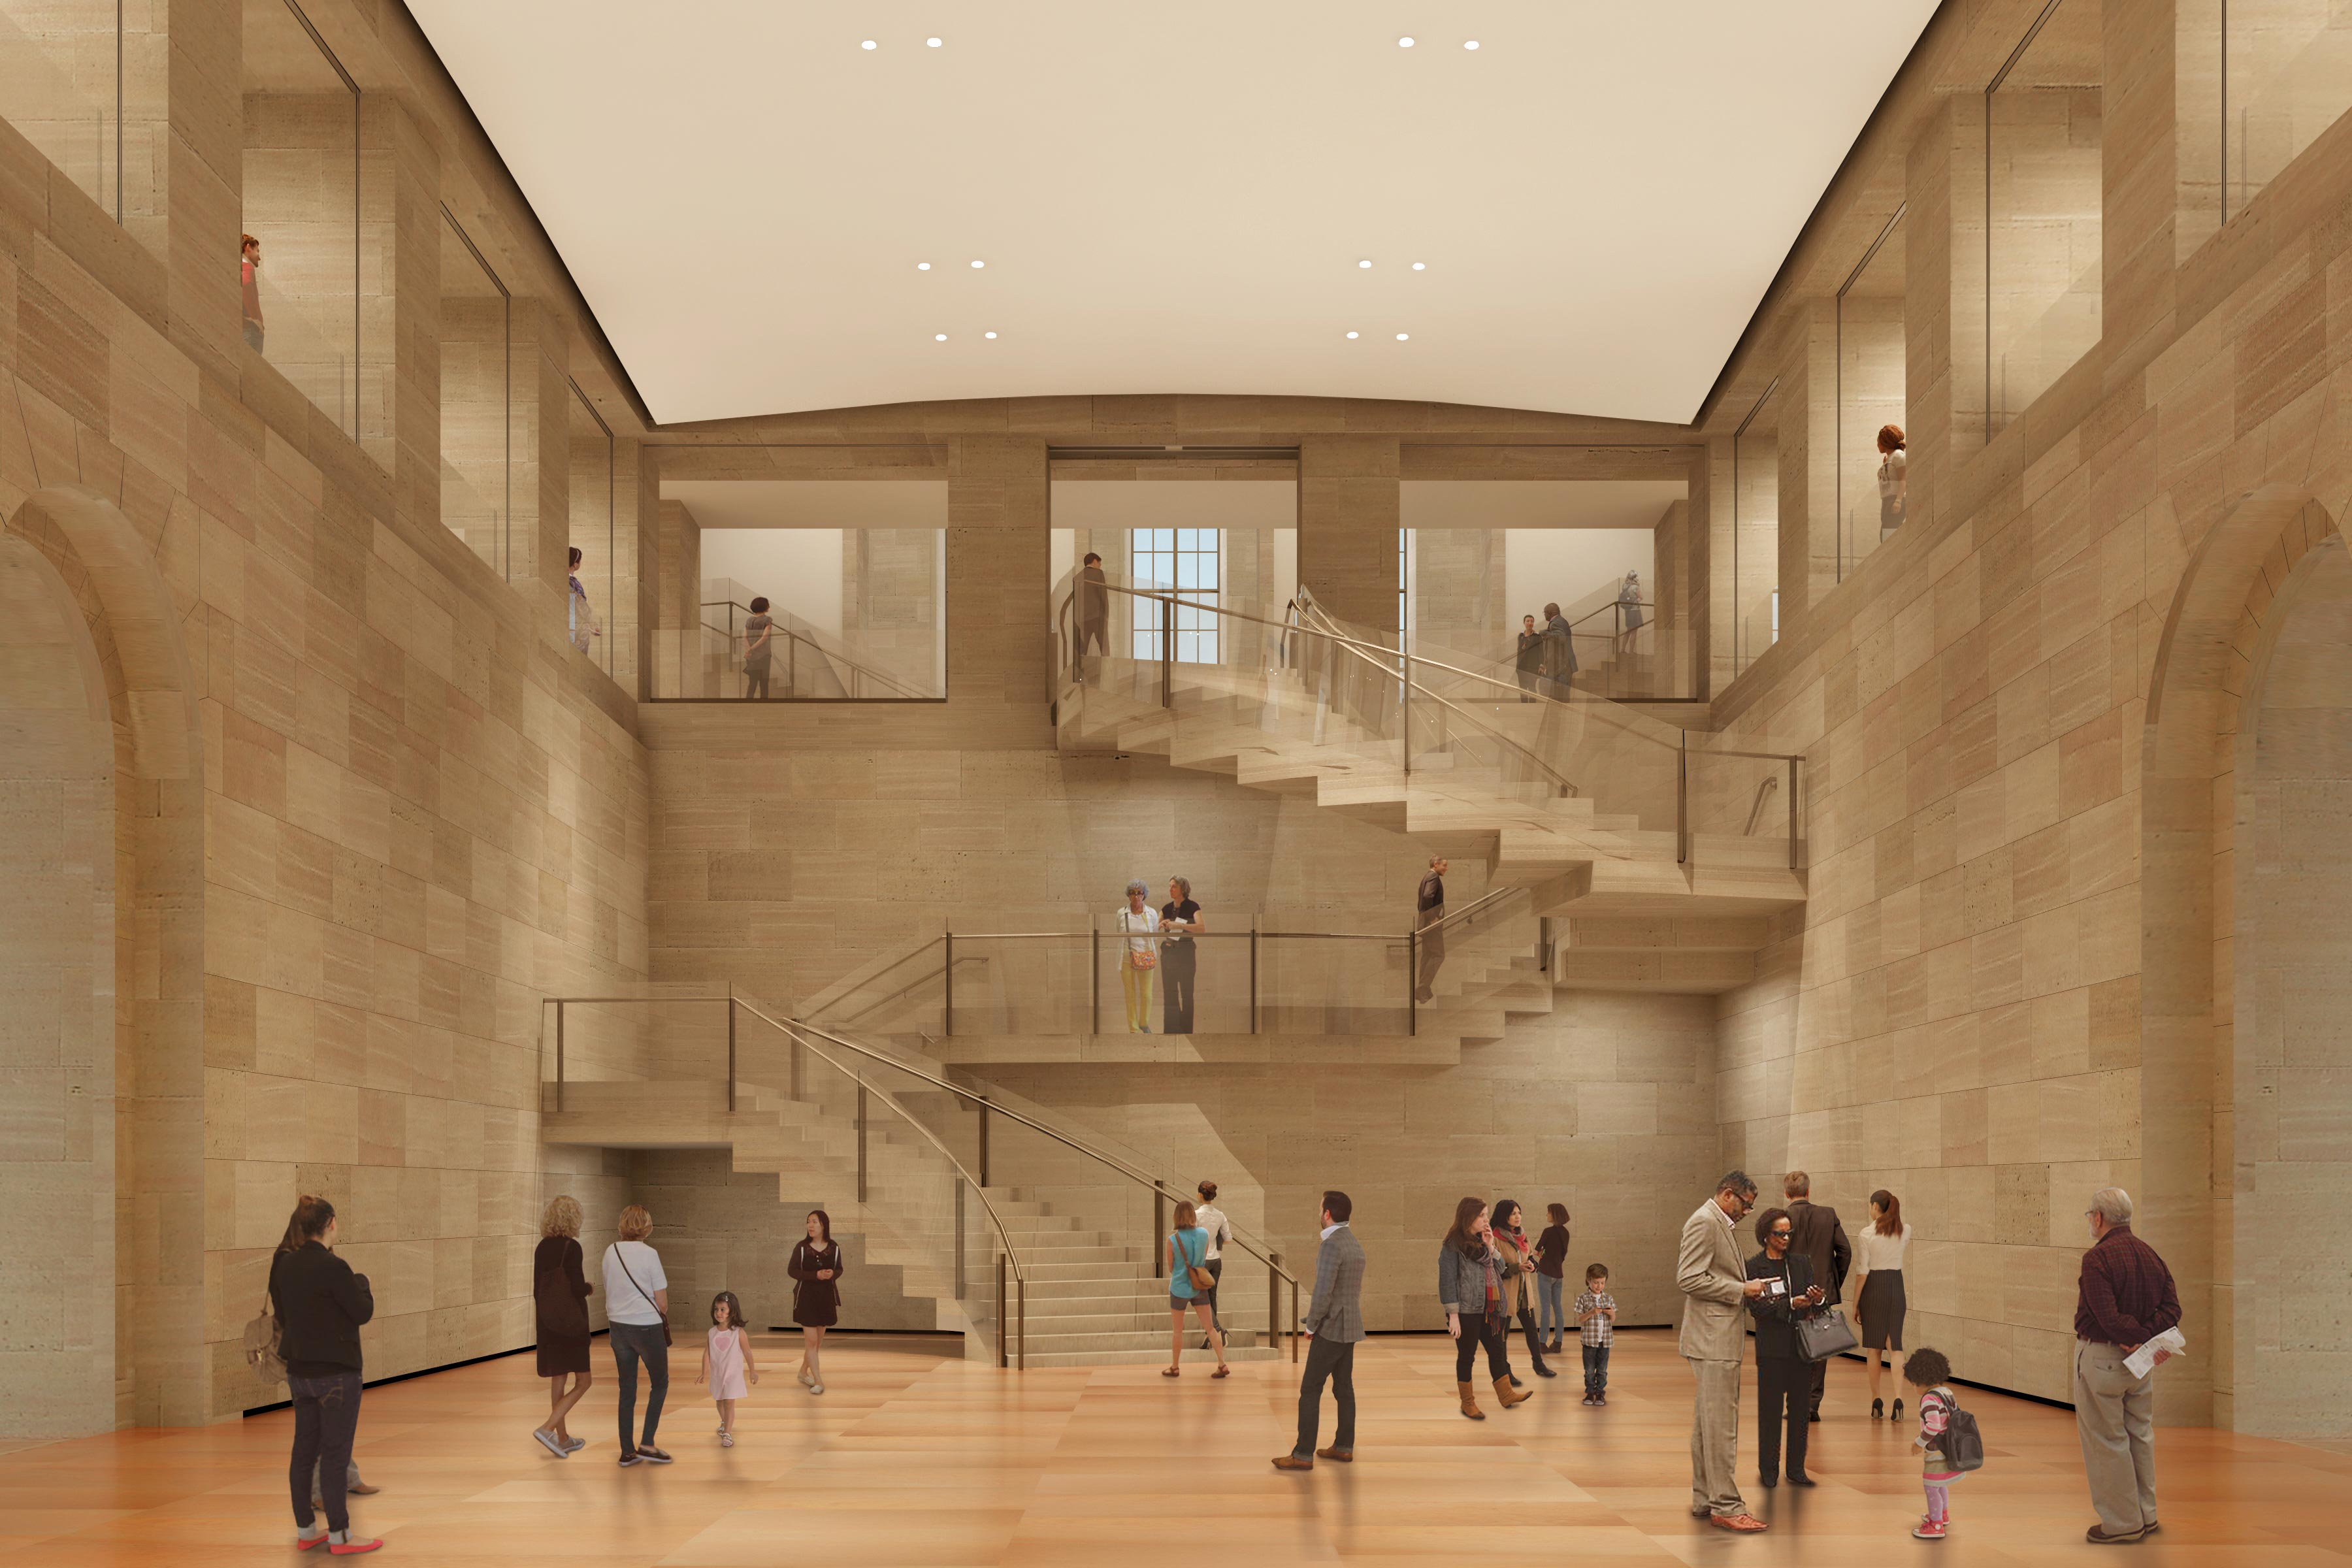 Philadelphia Museum of Art (Architectural rendering by Gehry Partners, LLP)